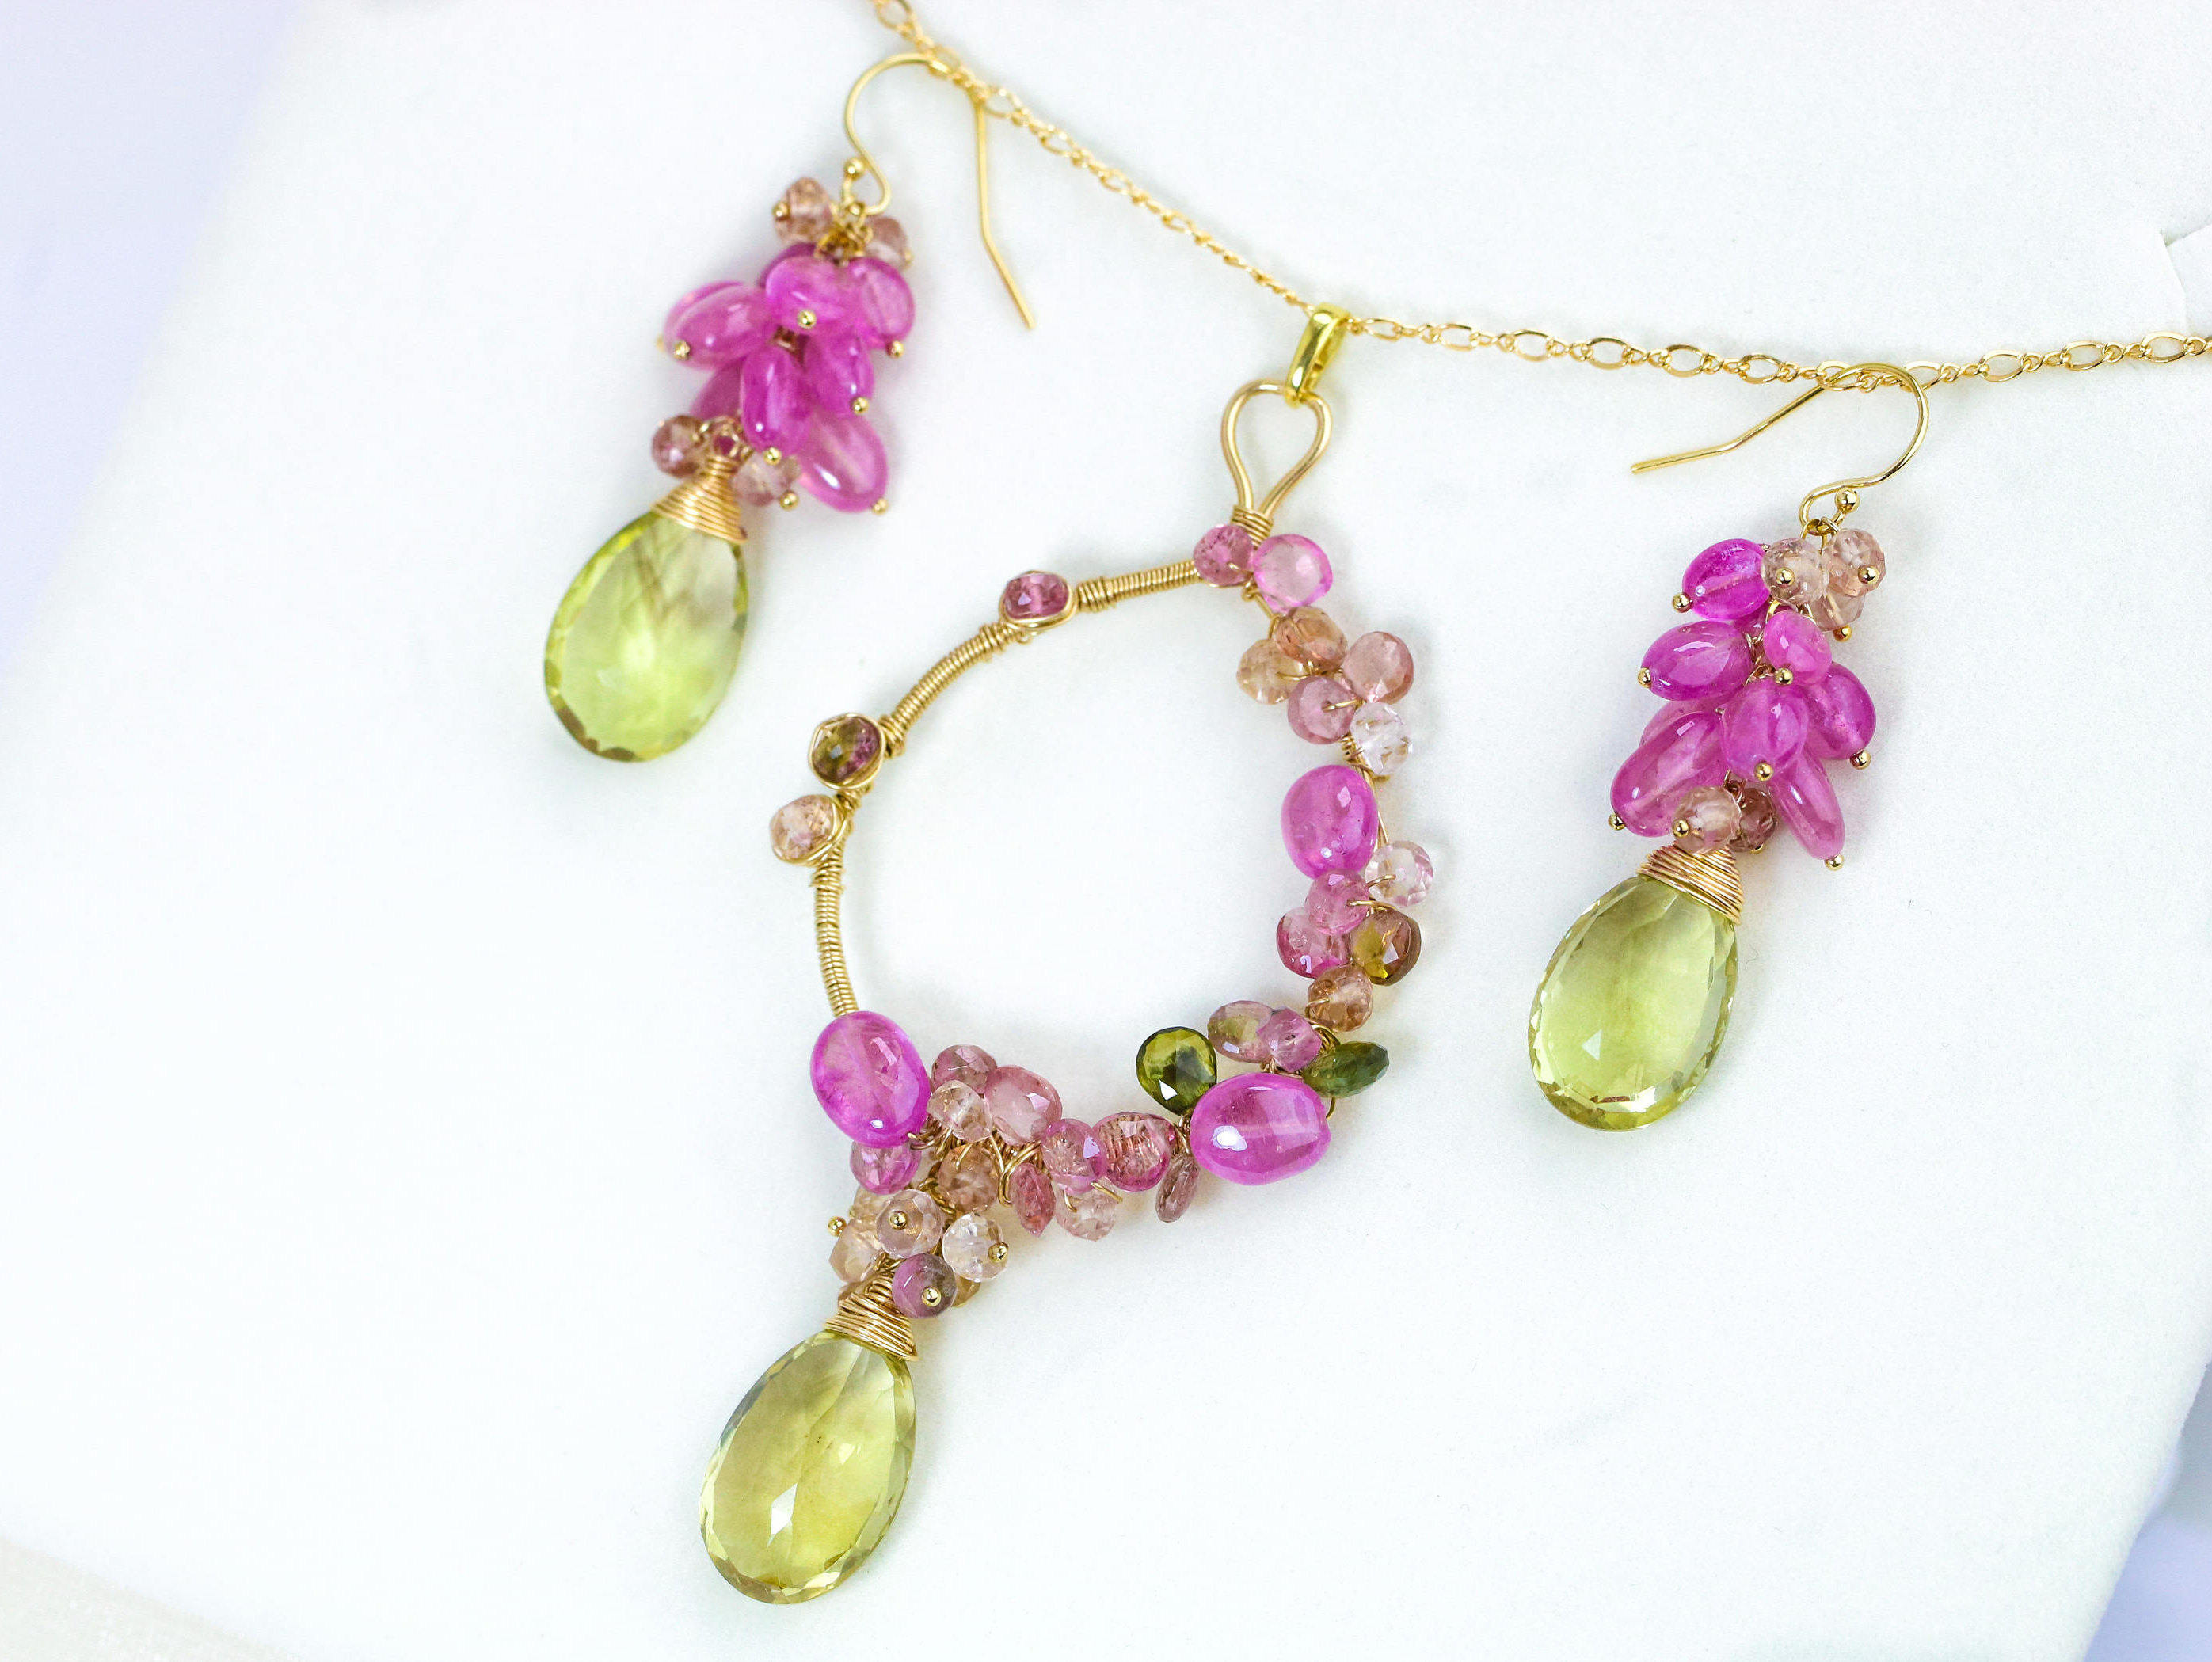 versant necklace pendant product tourmaline ila index pink kaylyn